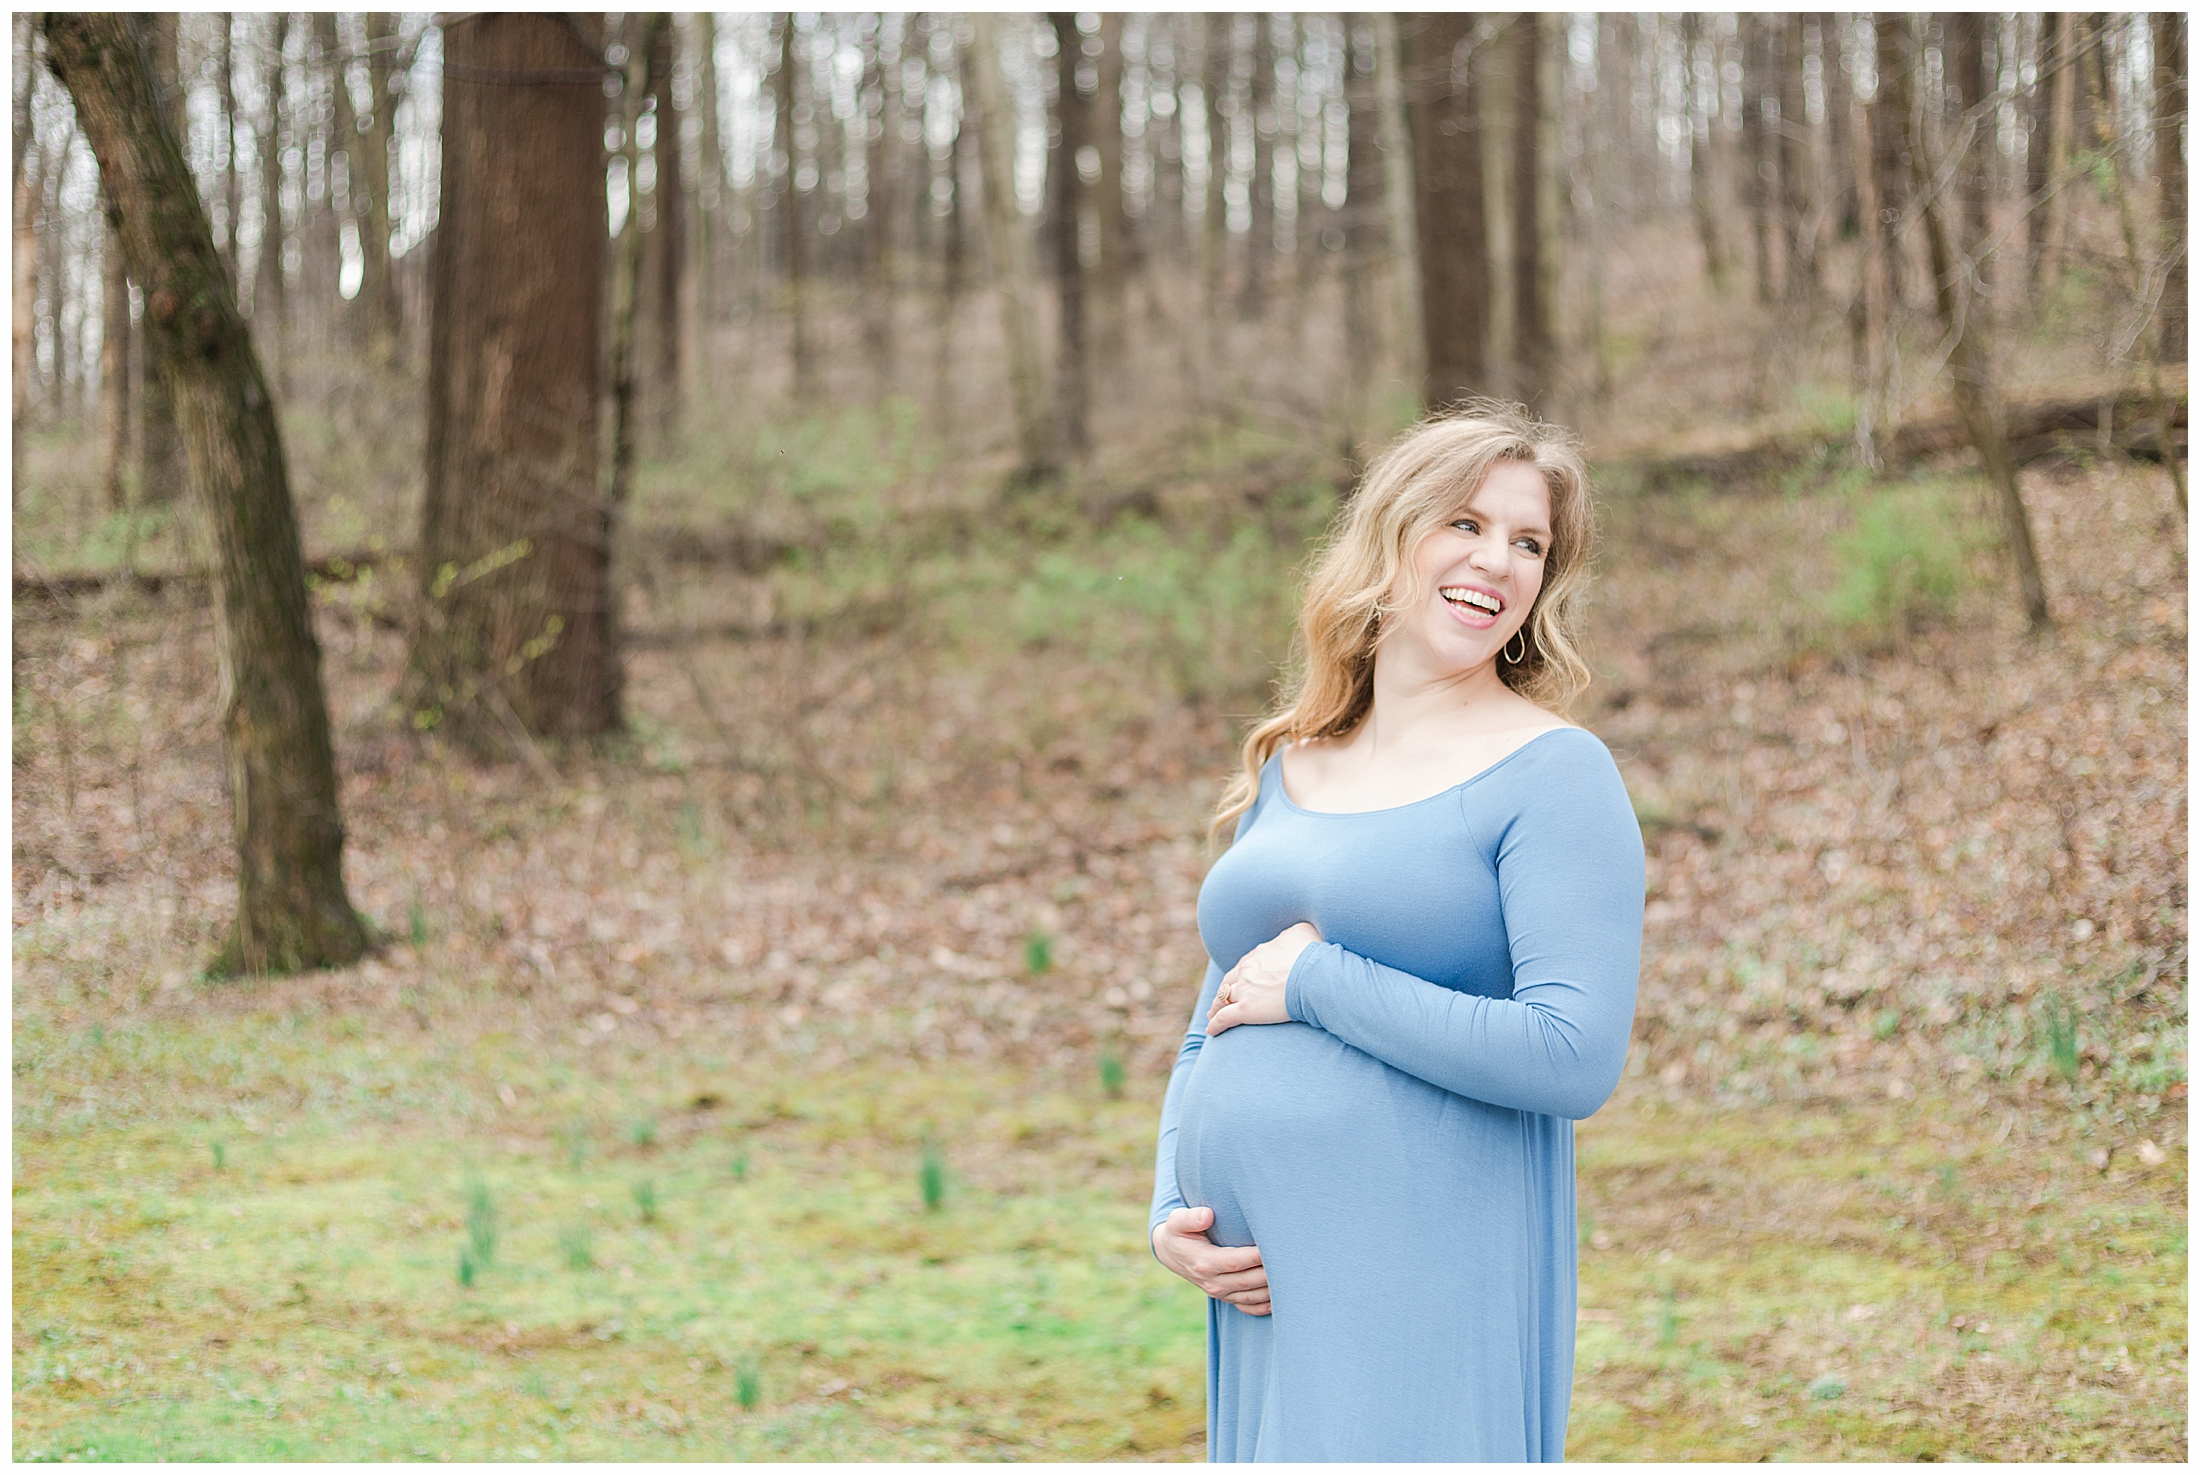 chester-county-maternity-photographer_0016.jpg